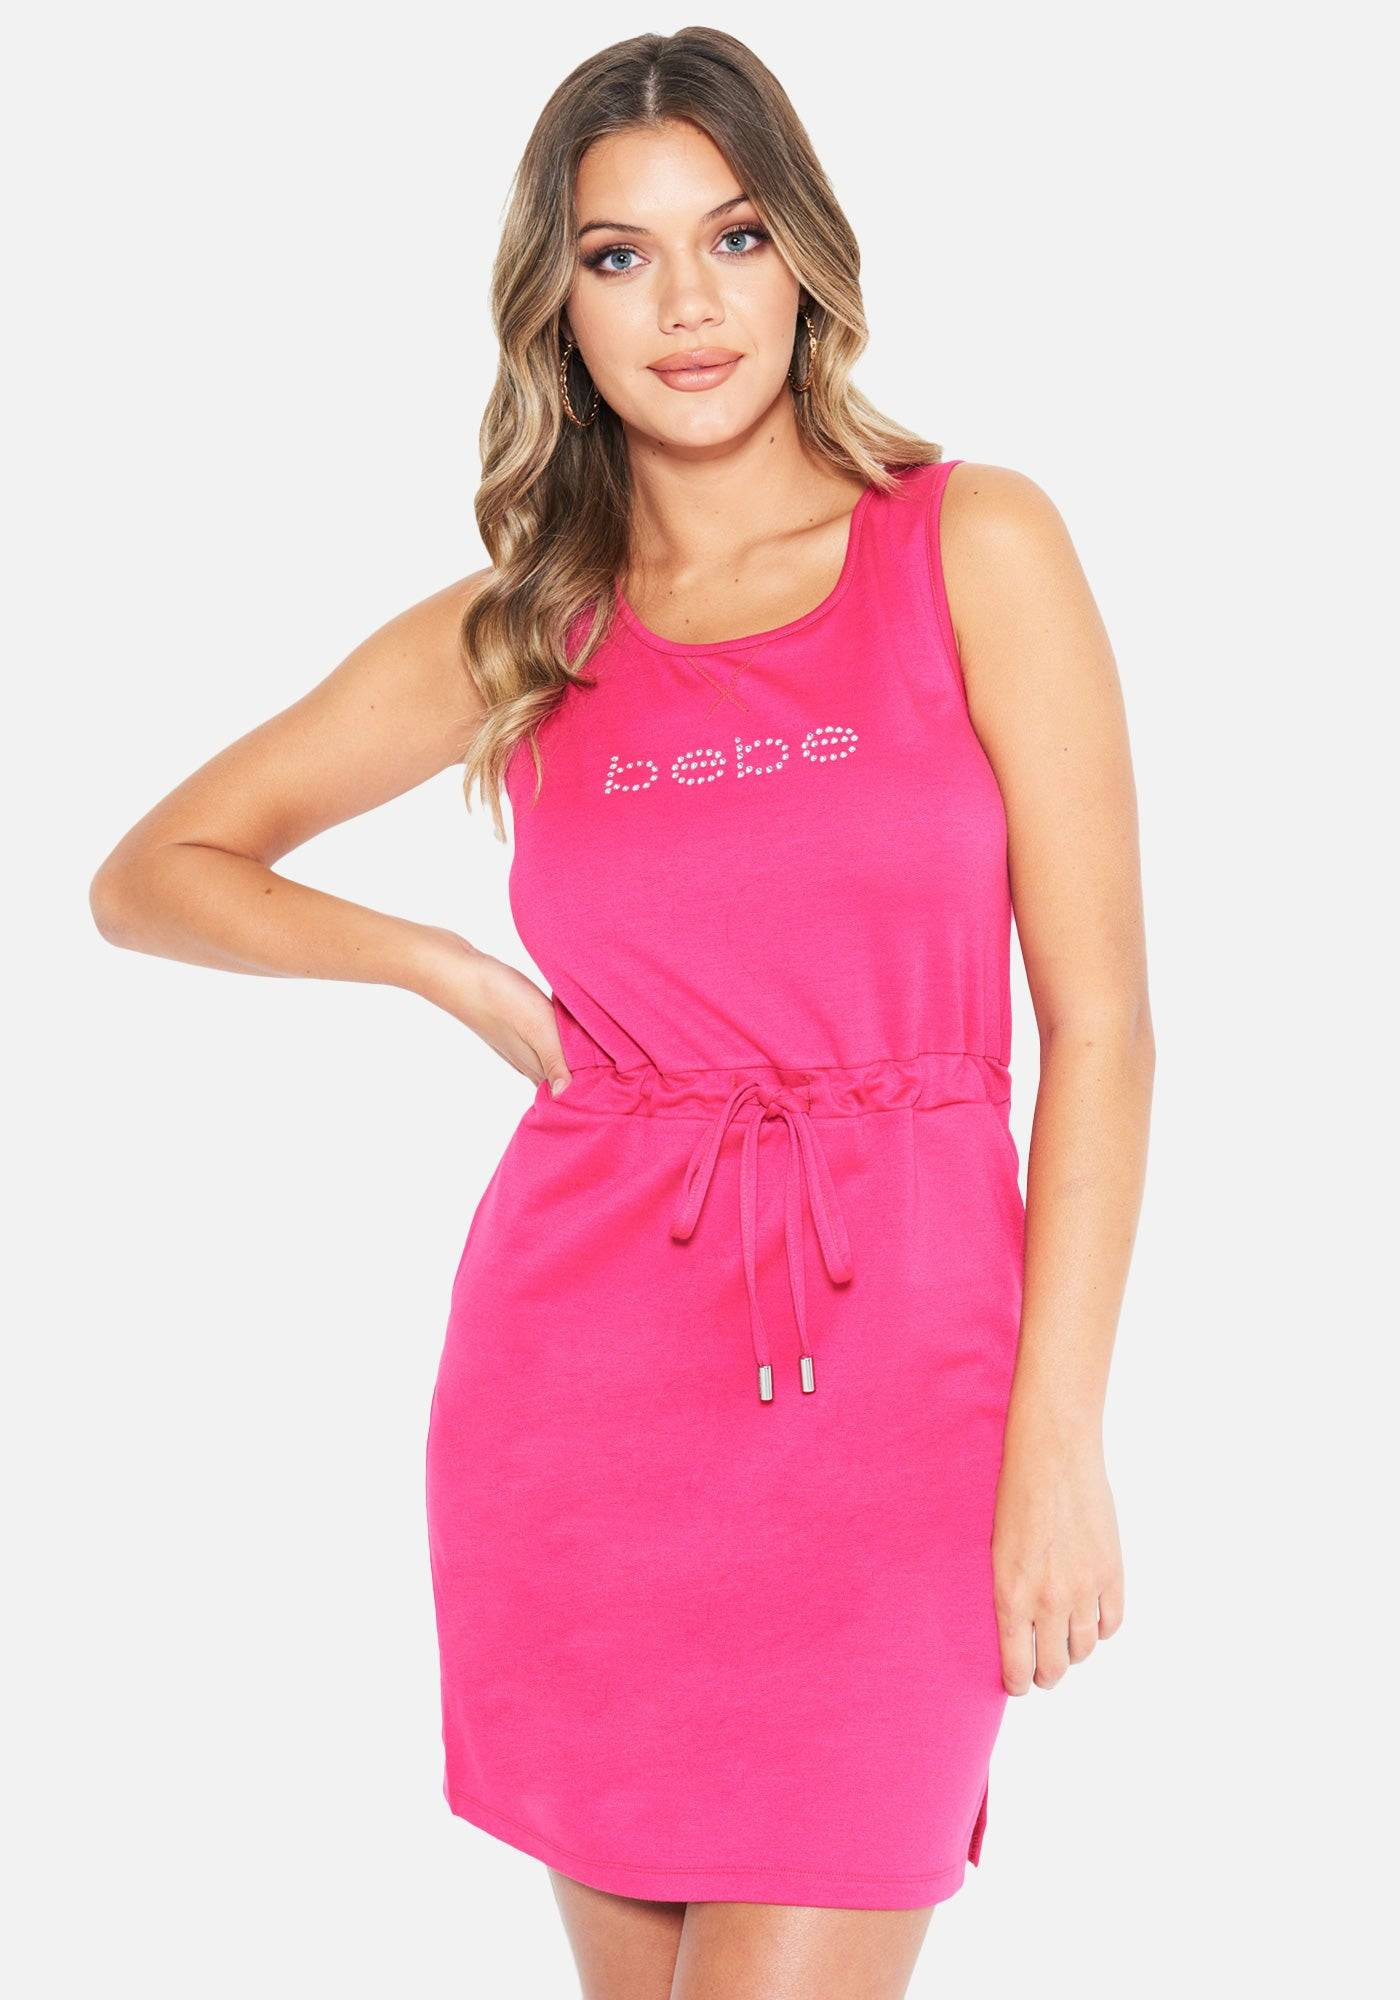 Bebe Women's French Terry Tank Dress, Size Small in Beet Root Spandex